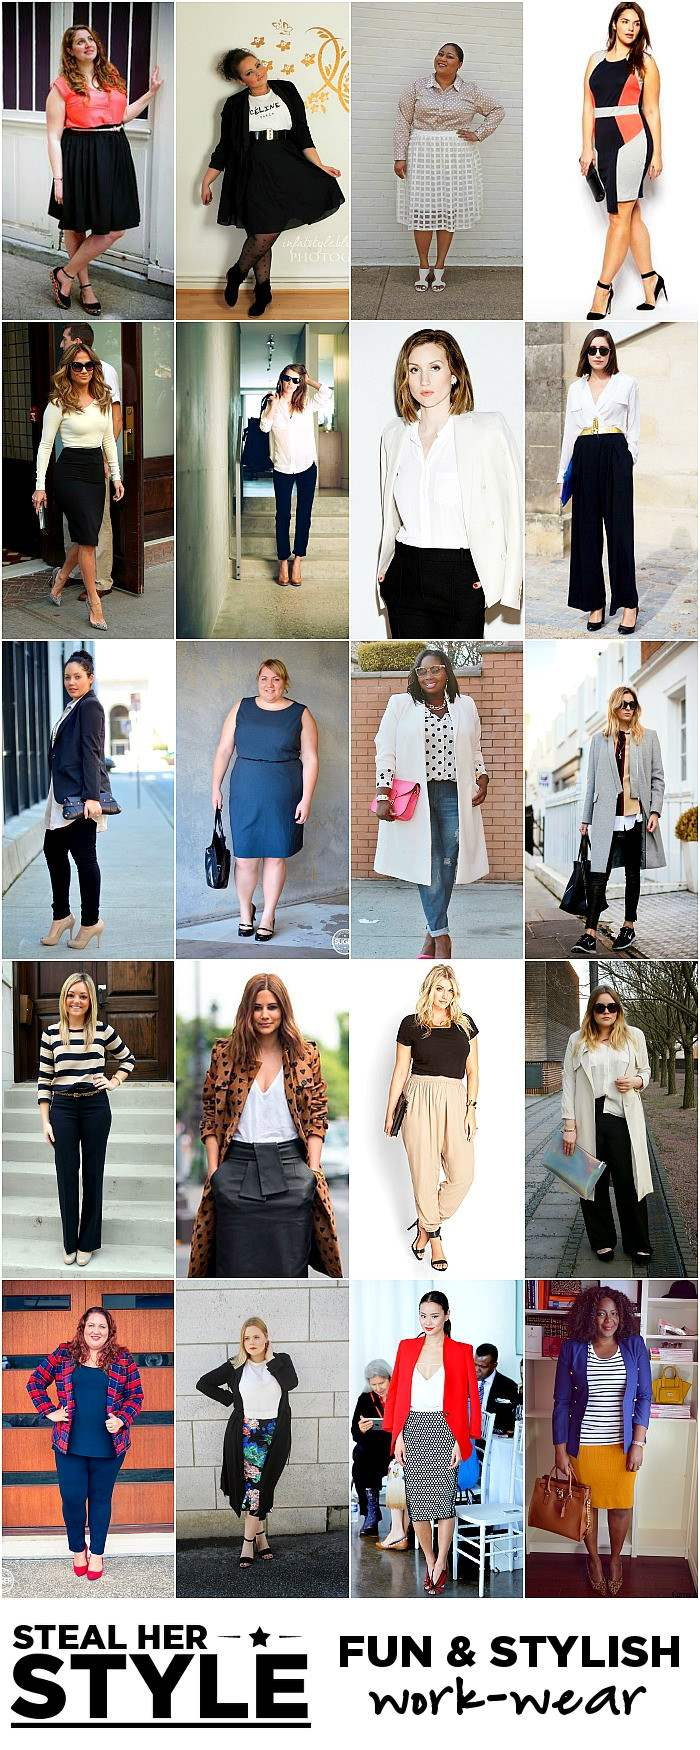 steal her style work outfit inspiration work wear ideas